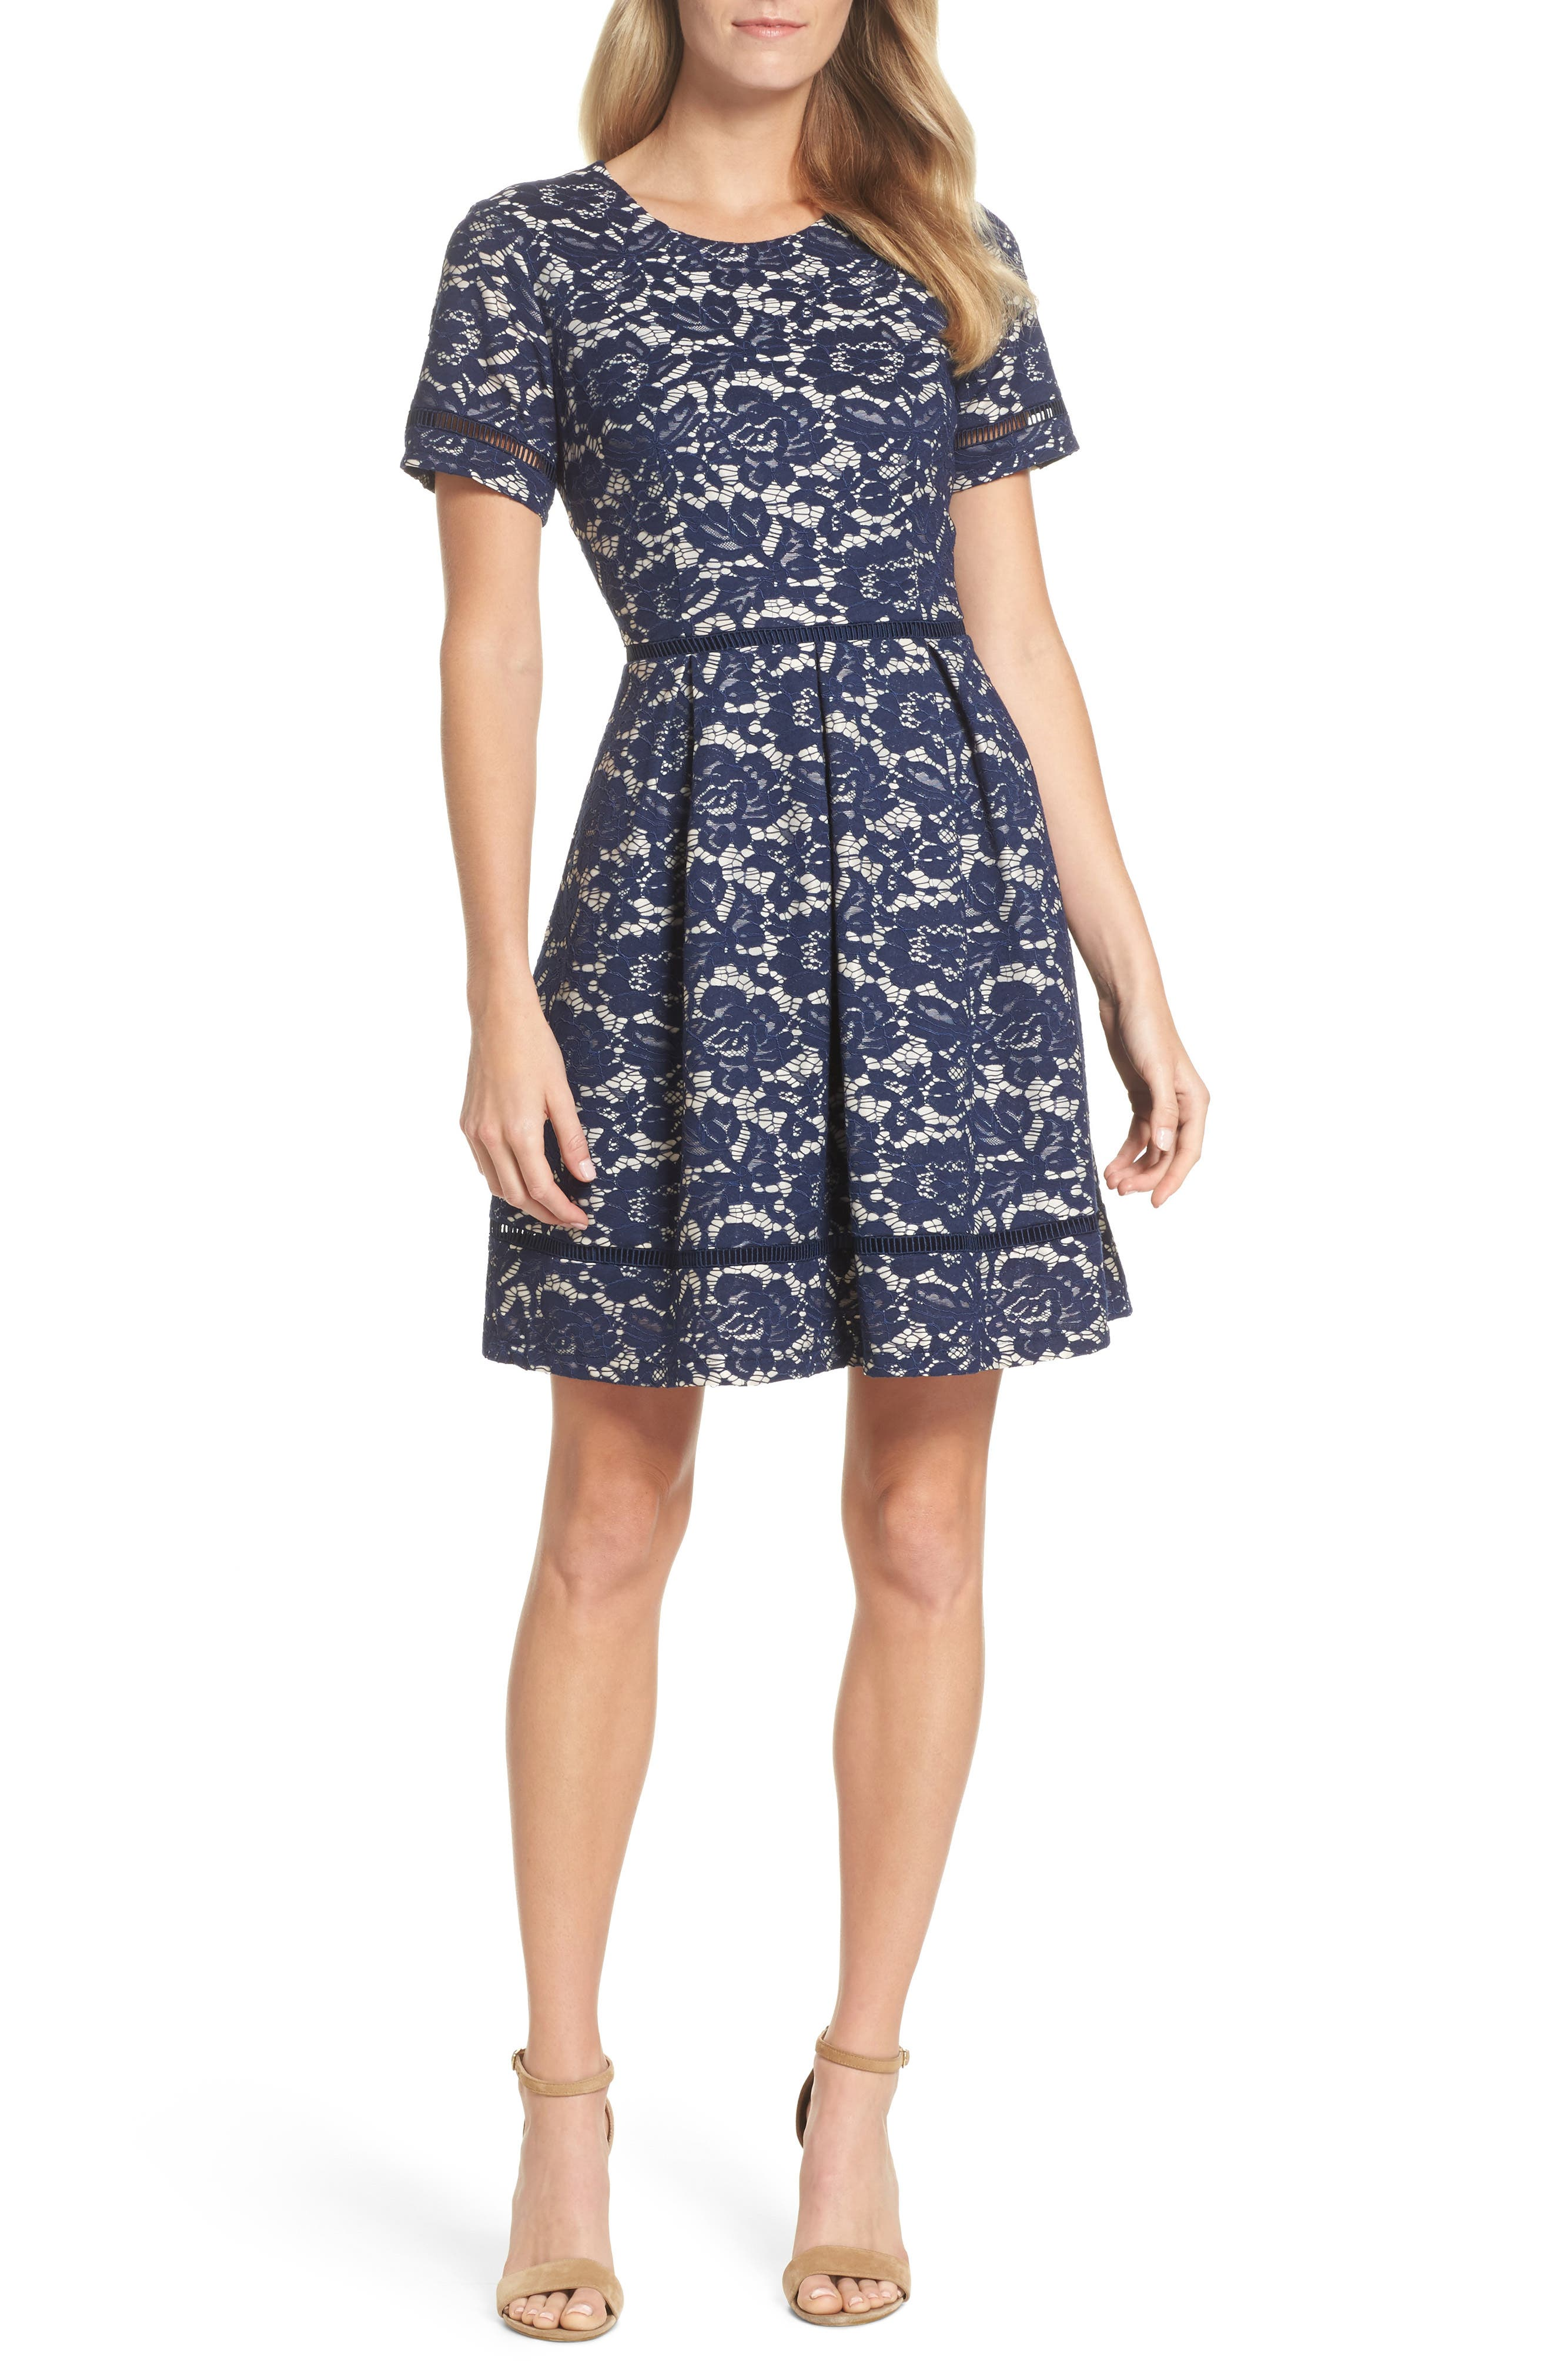 Main Image - Vince Camuto Bonded Lace Fit & Flare Dress